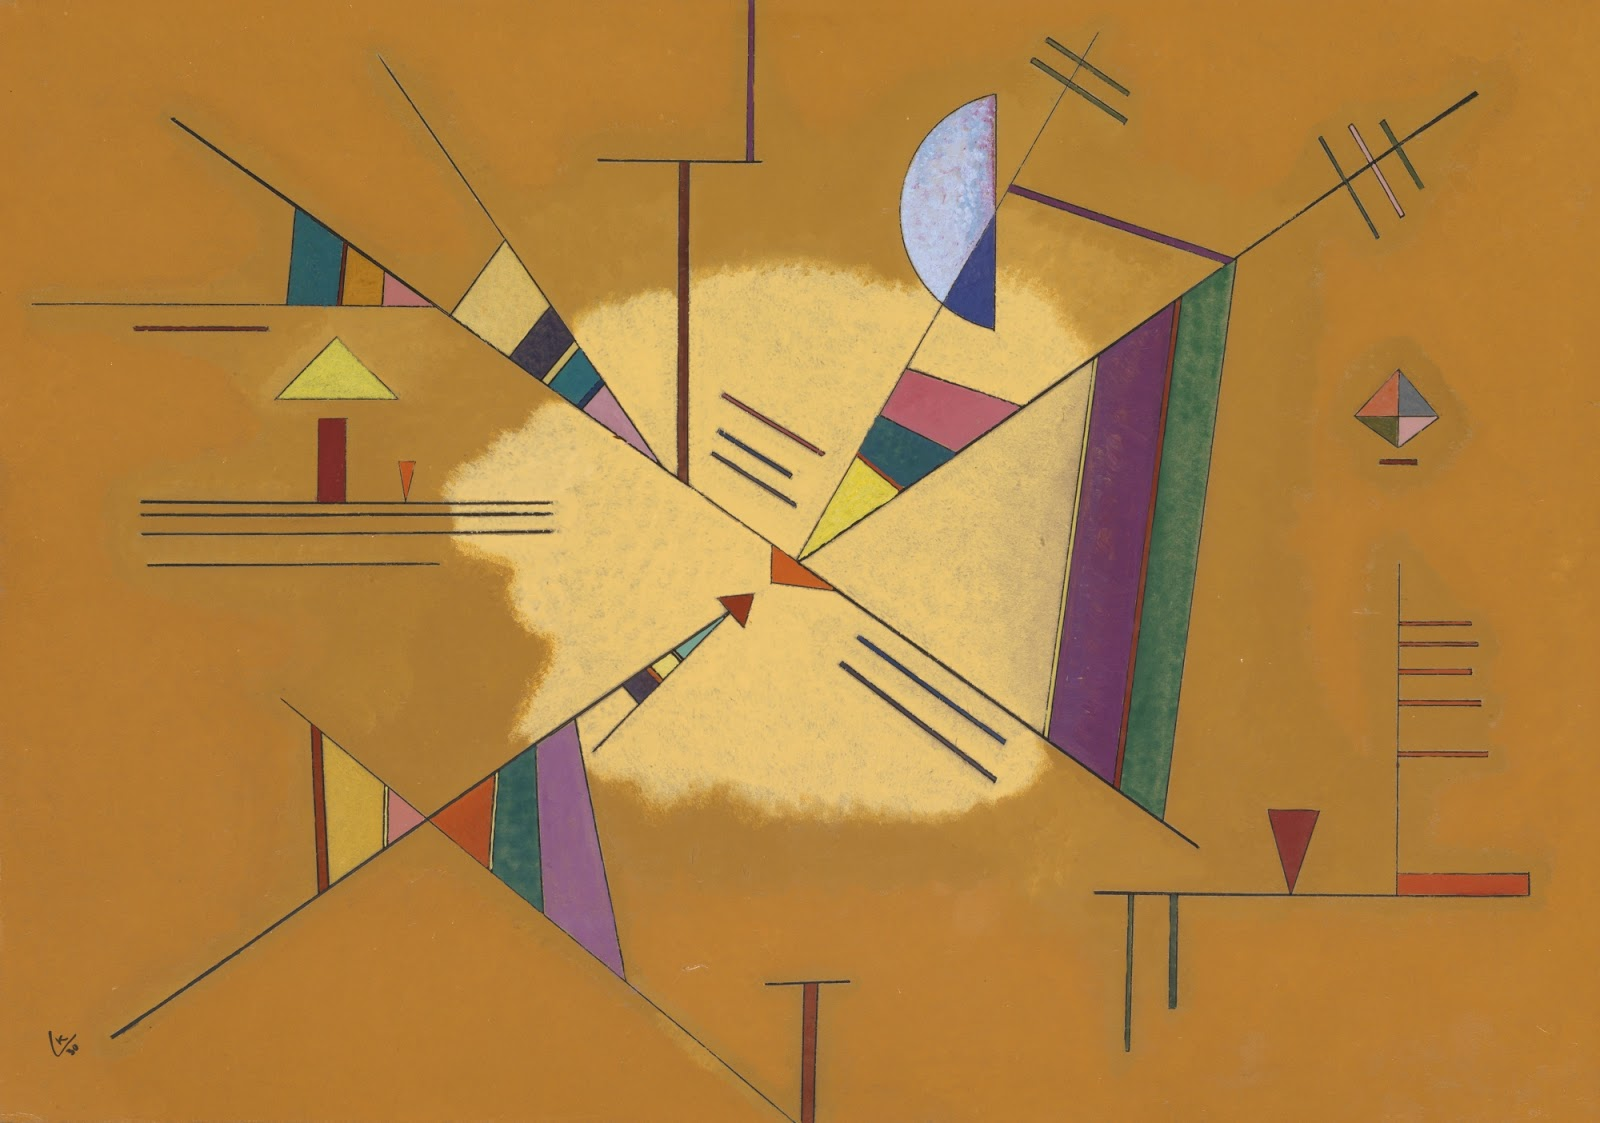 wassily kandinsky abstract expressionist painter tutt art early yearskandinsky s mother was a muscovite one of his great grandmothers a n princess and his father a native of kyakhta a siberian town near